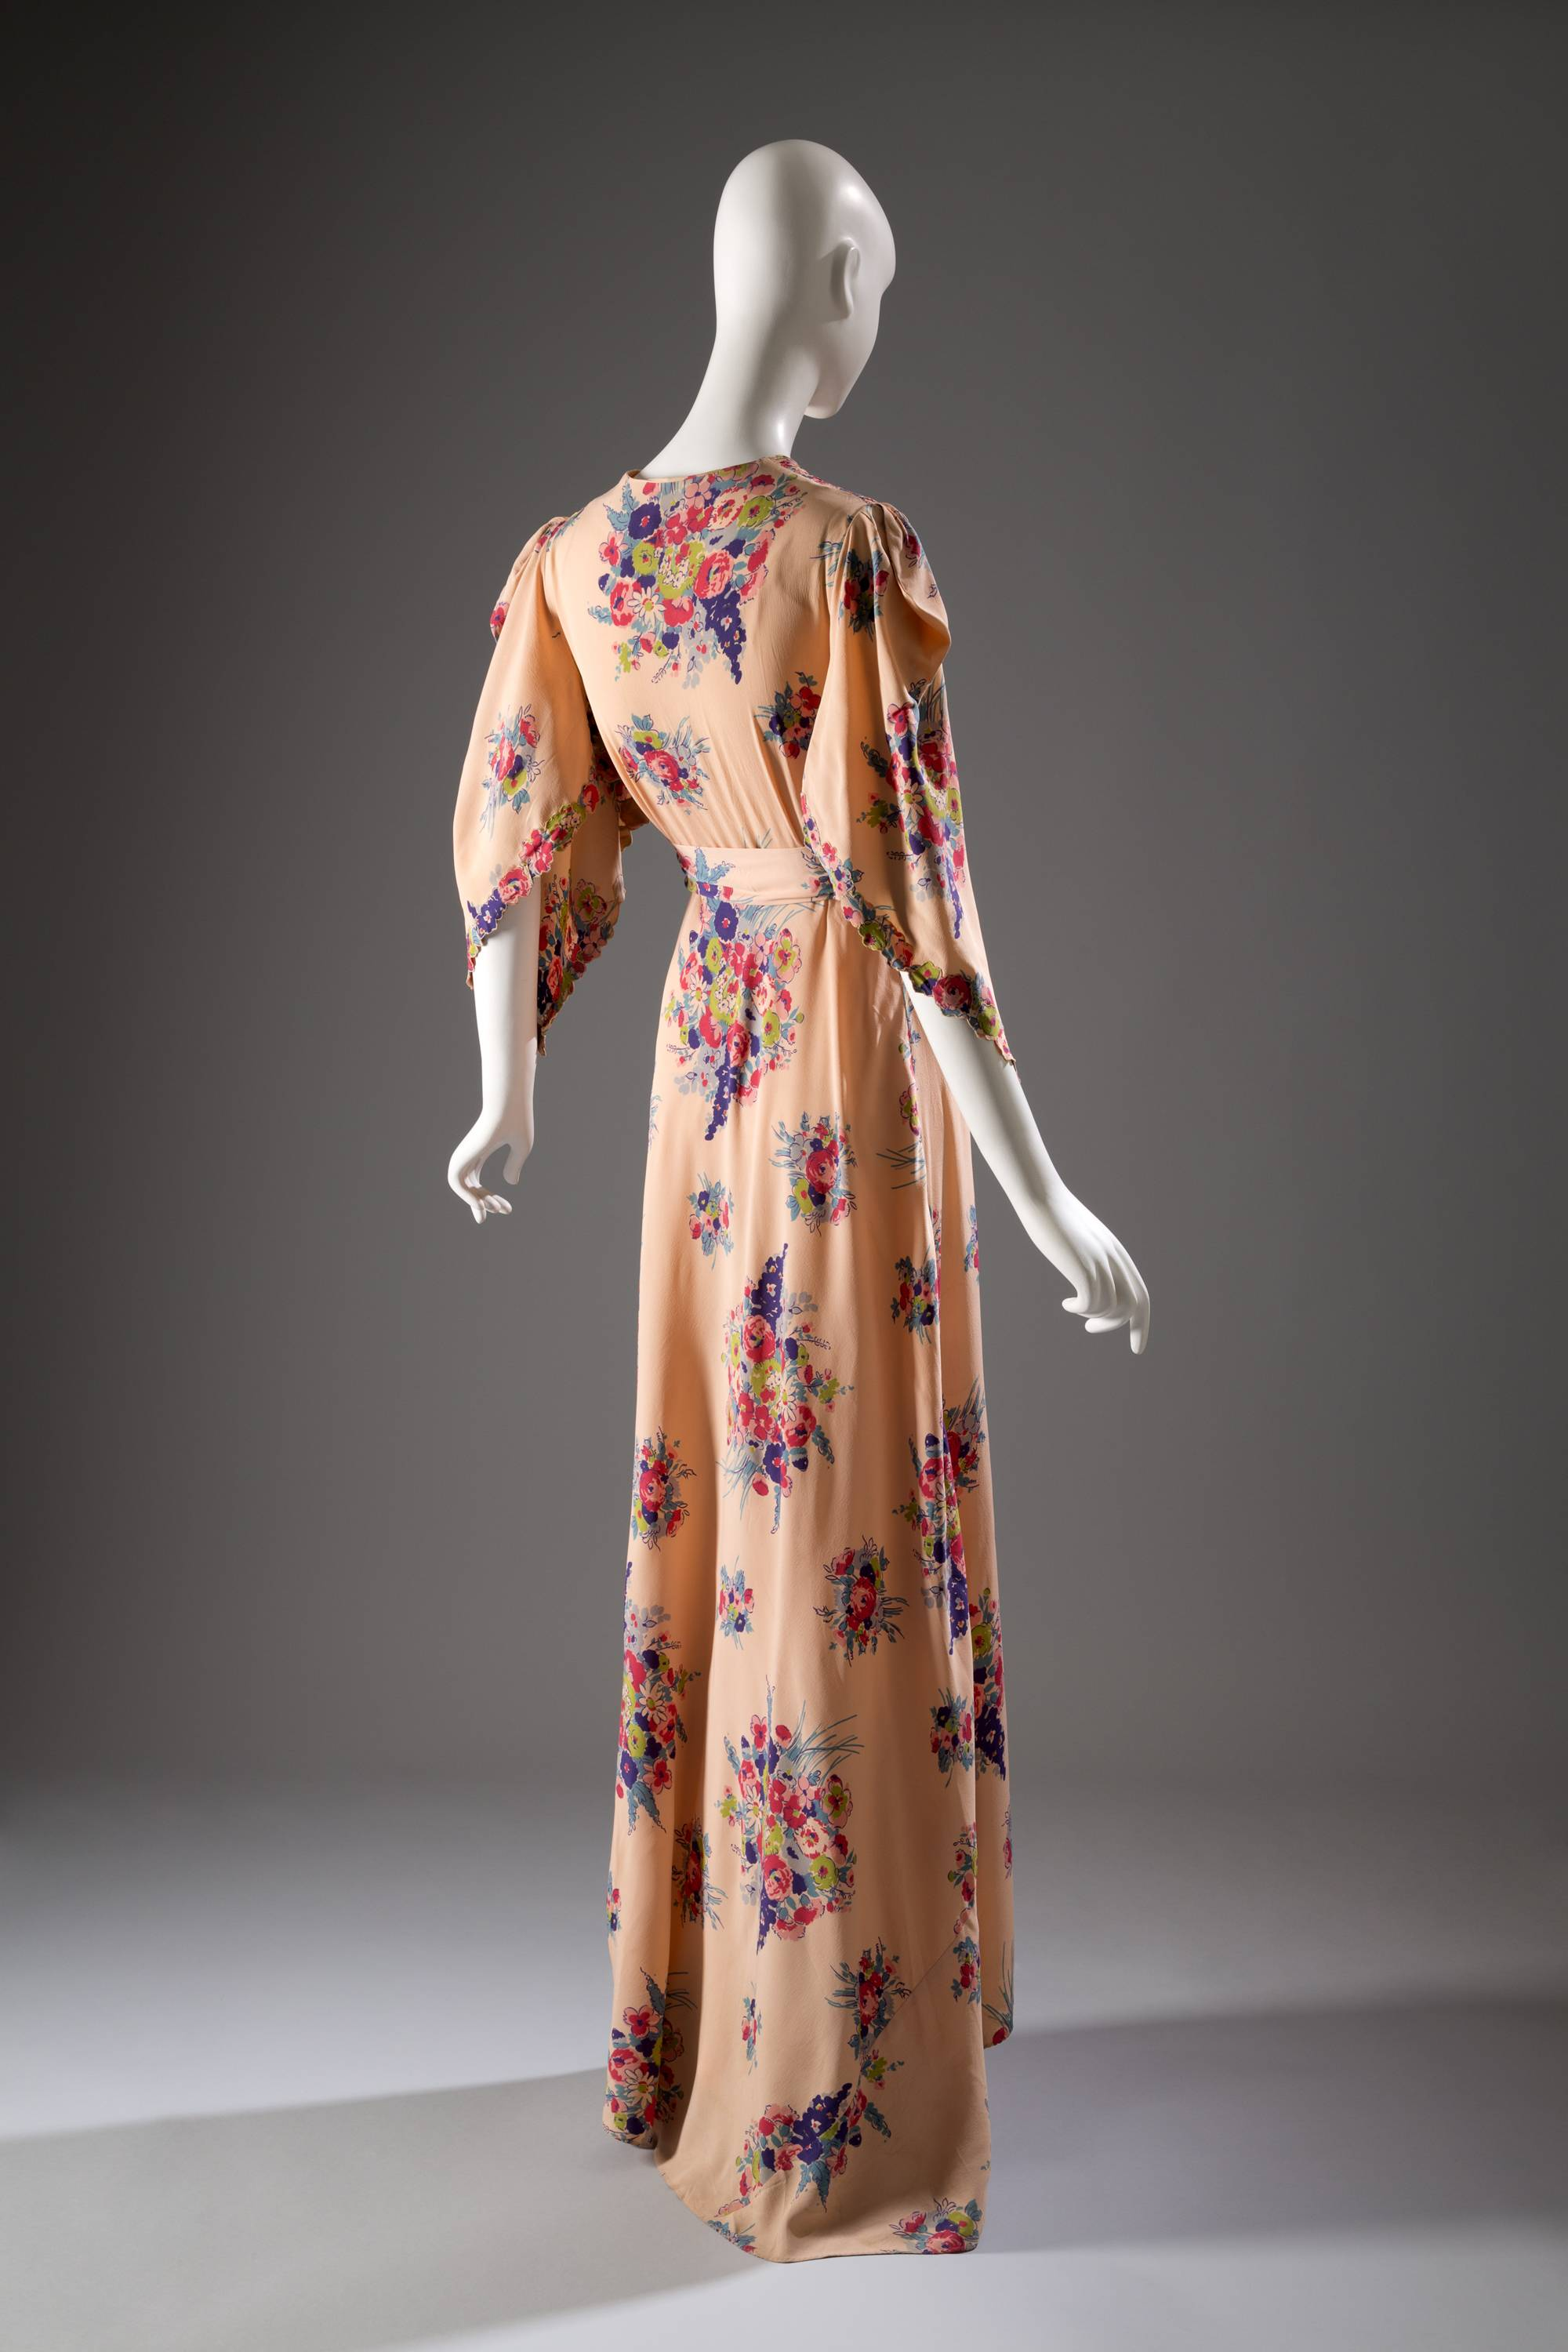 A lounging robe in printed rayon, a U.S. garment, circa 1942, from Jay Thorpe. From a 1770 corset to a 2014 bra-and-panty set in lacy stretch silk, the Museum at the Fashion Institute of Technology has taken on lingerie and ladies foundation garments as the focus of a new exhibition.